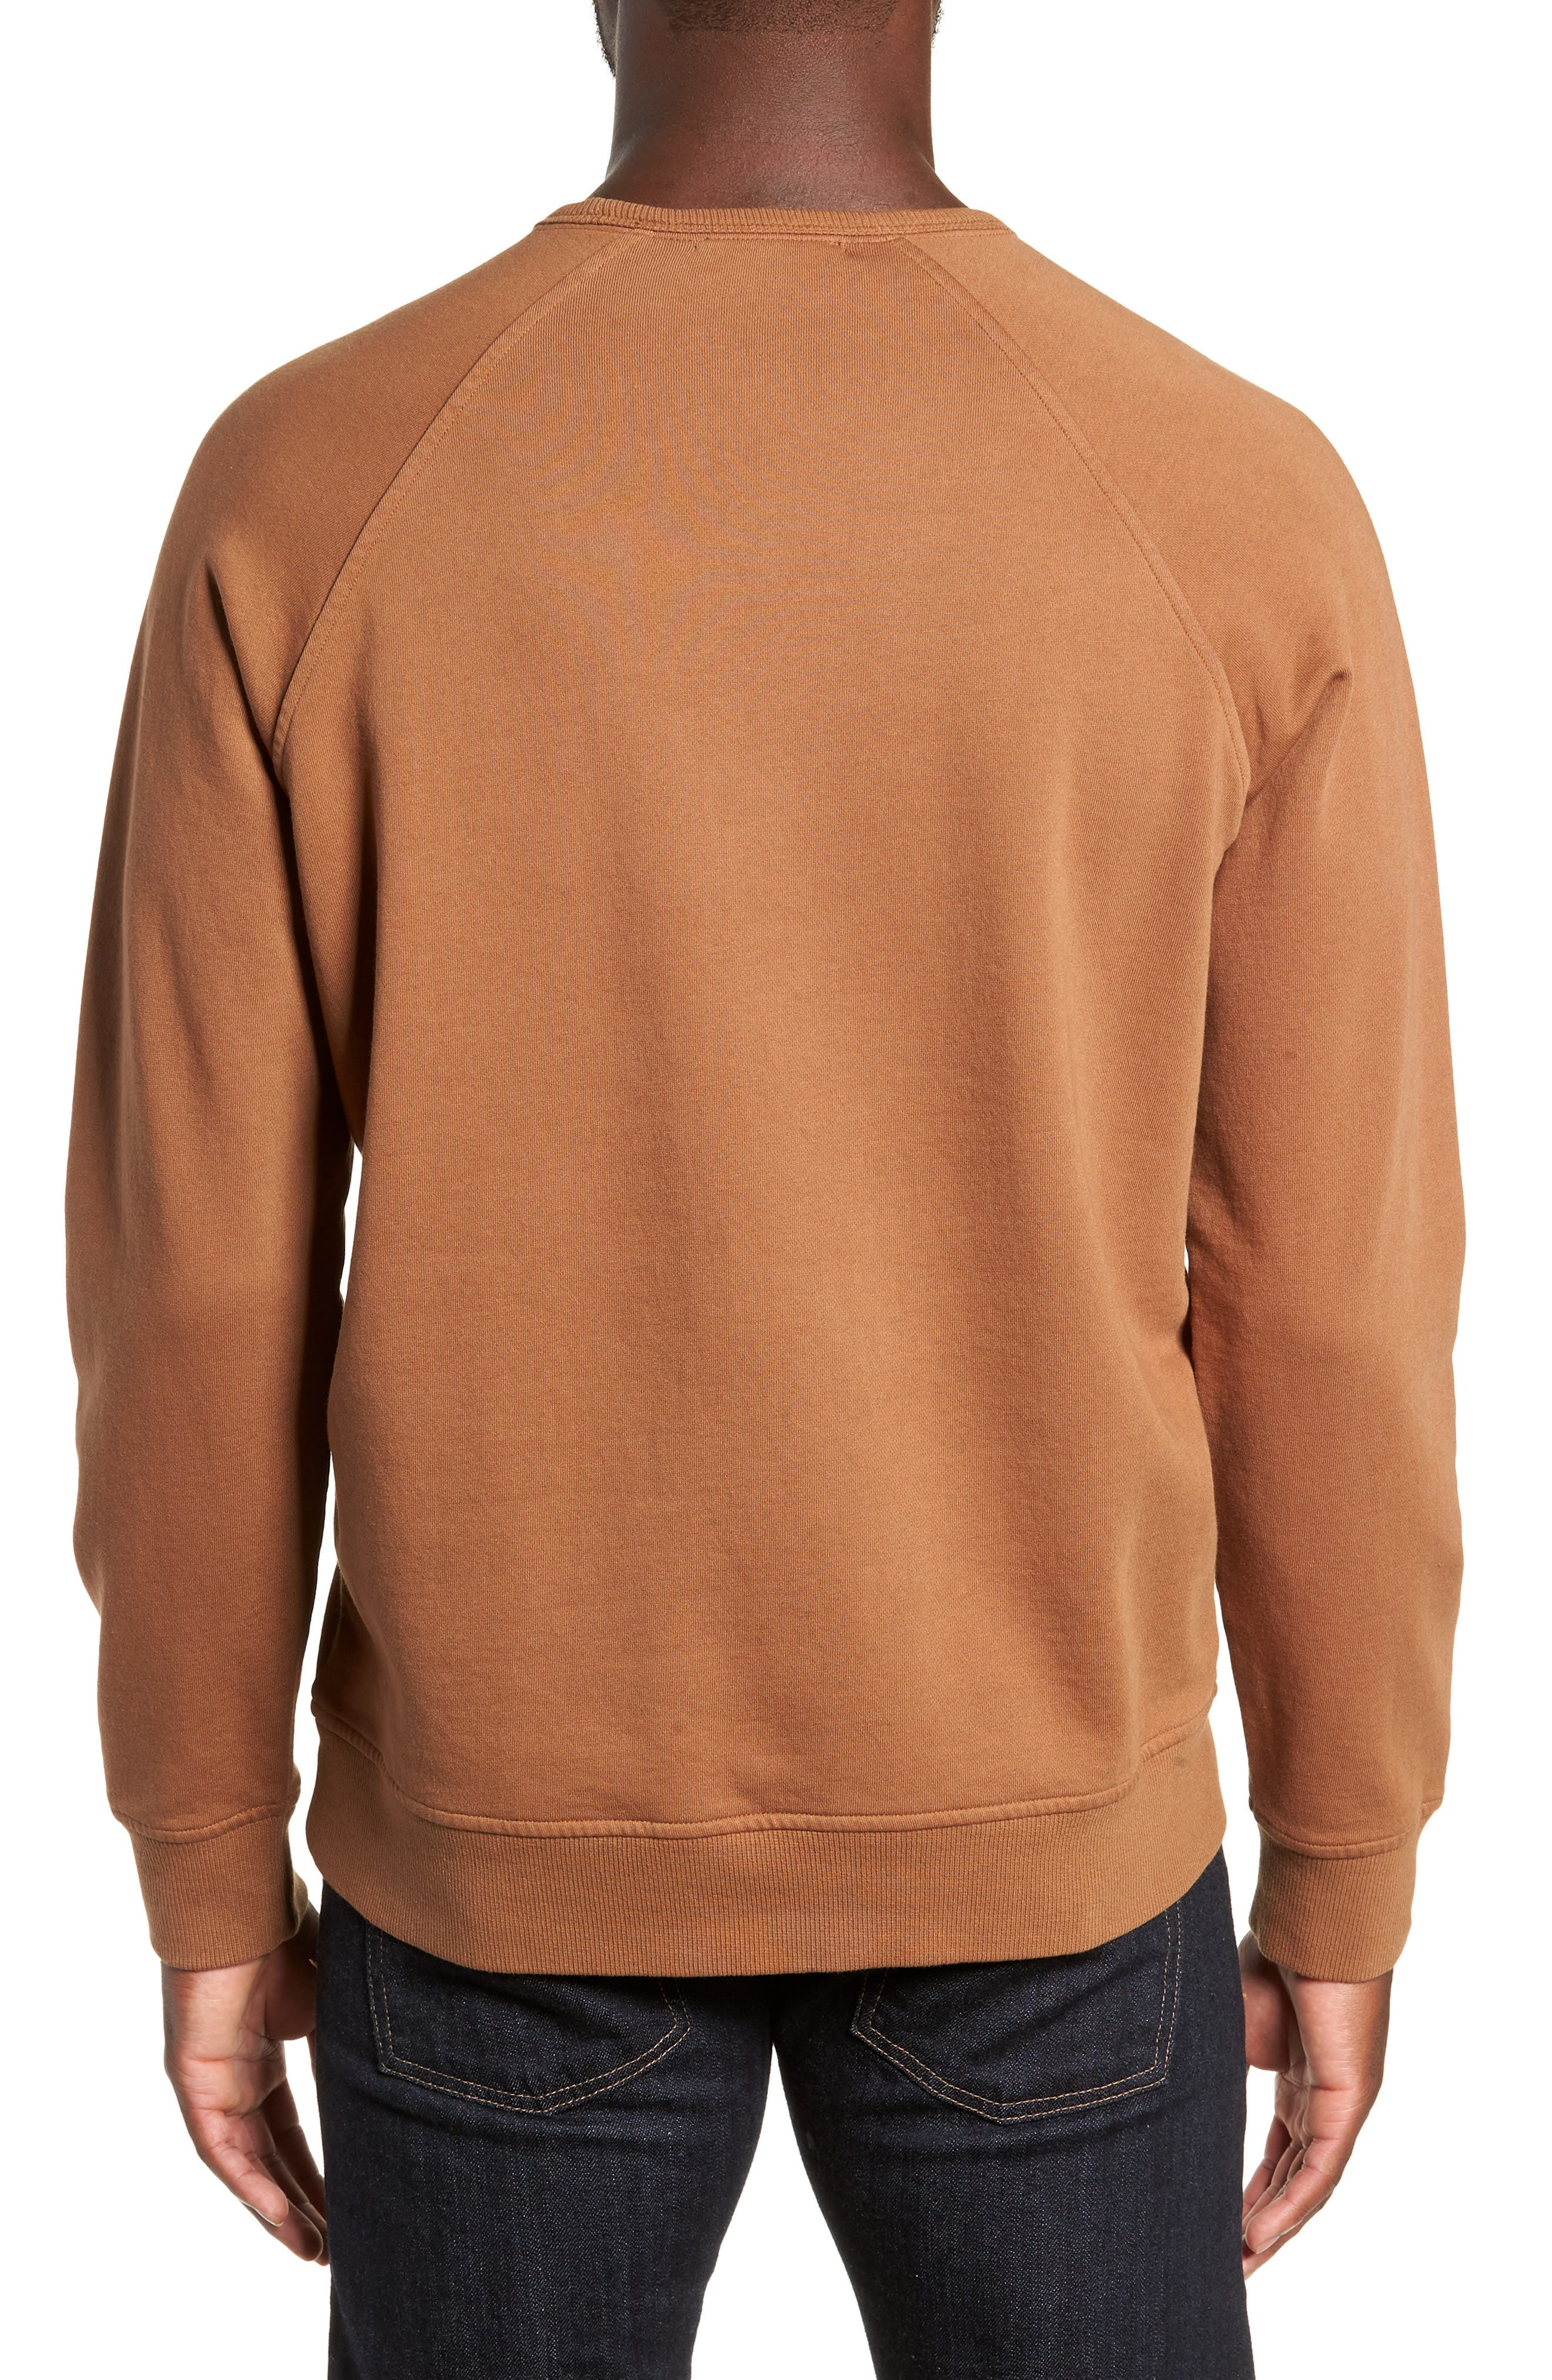 Schrank Regular Fit Cotton Sweatshirt,                             Alternate thumbnail 2, color,                             200